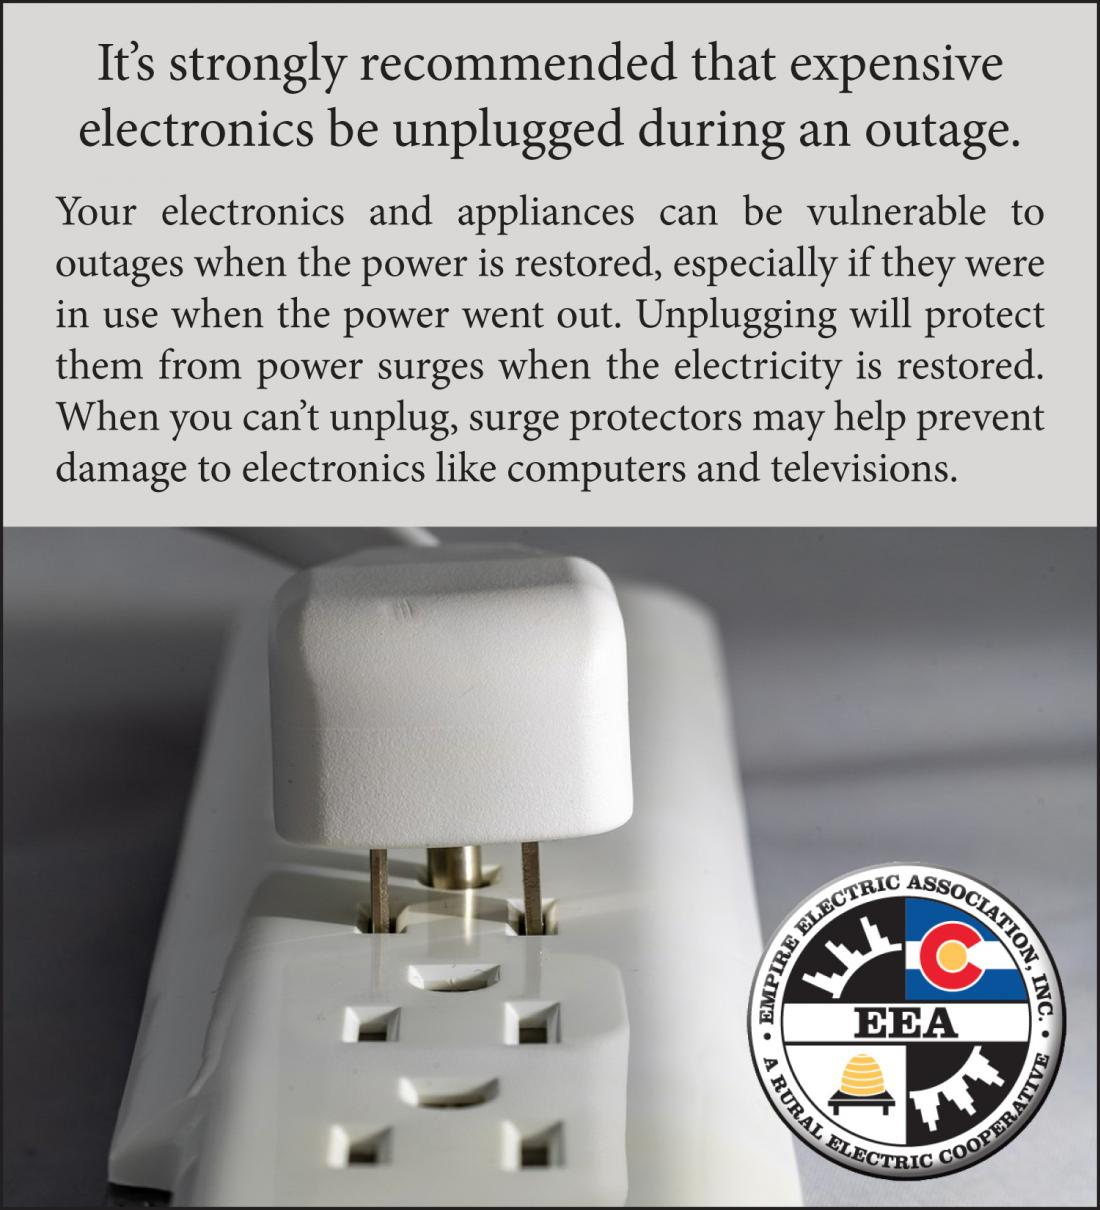 Unplug Appliances During Outage_0.jpg